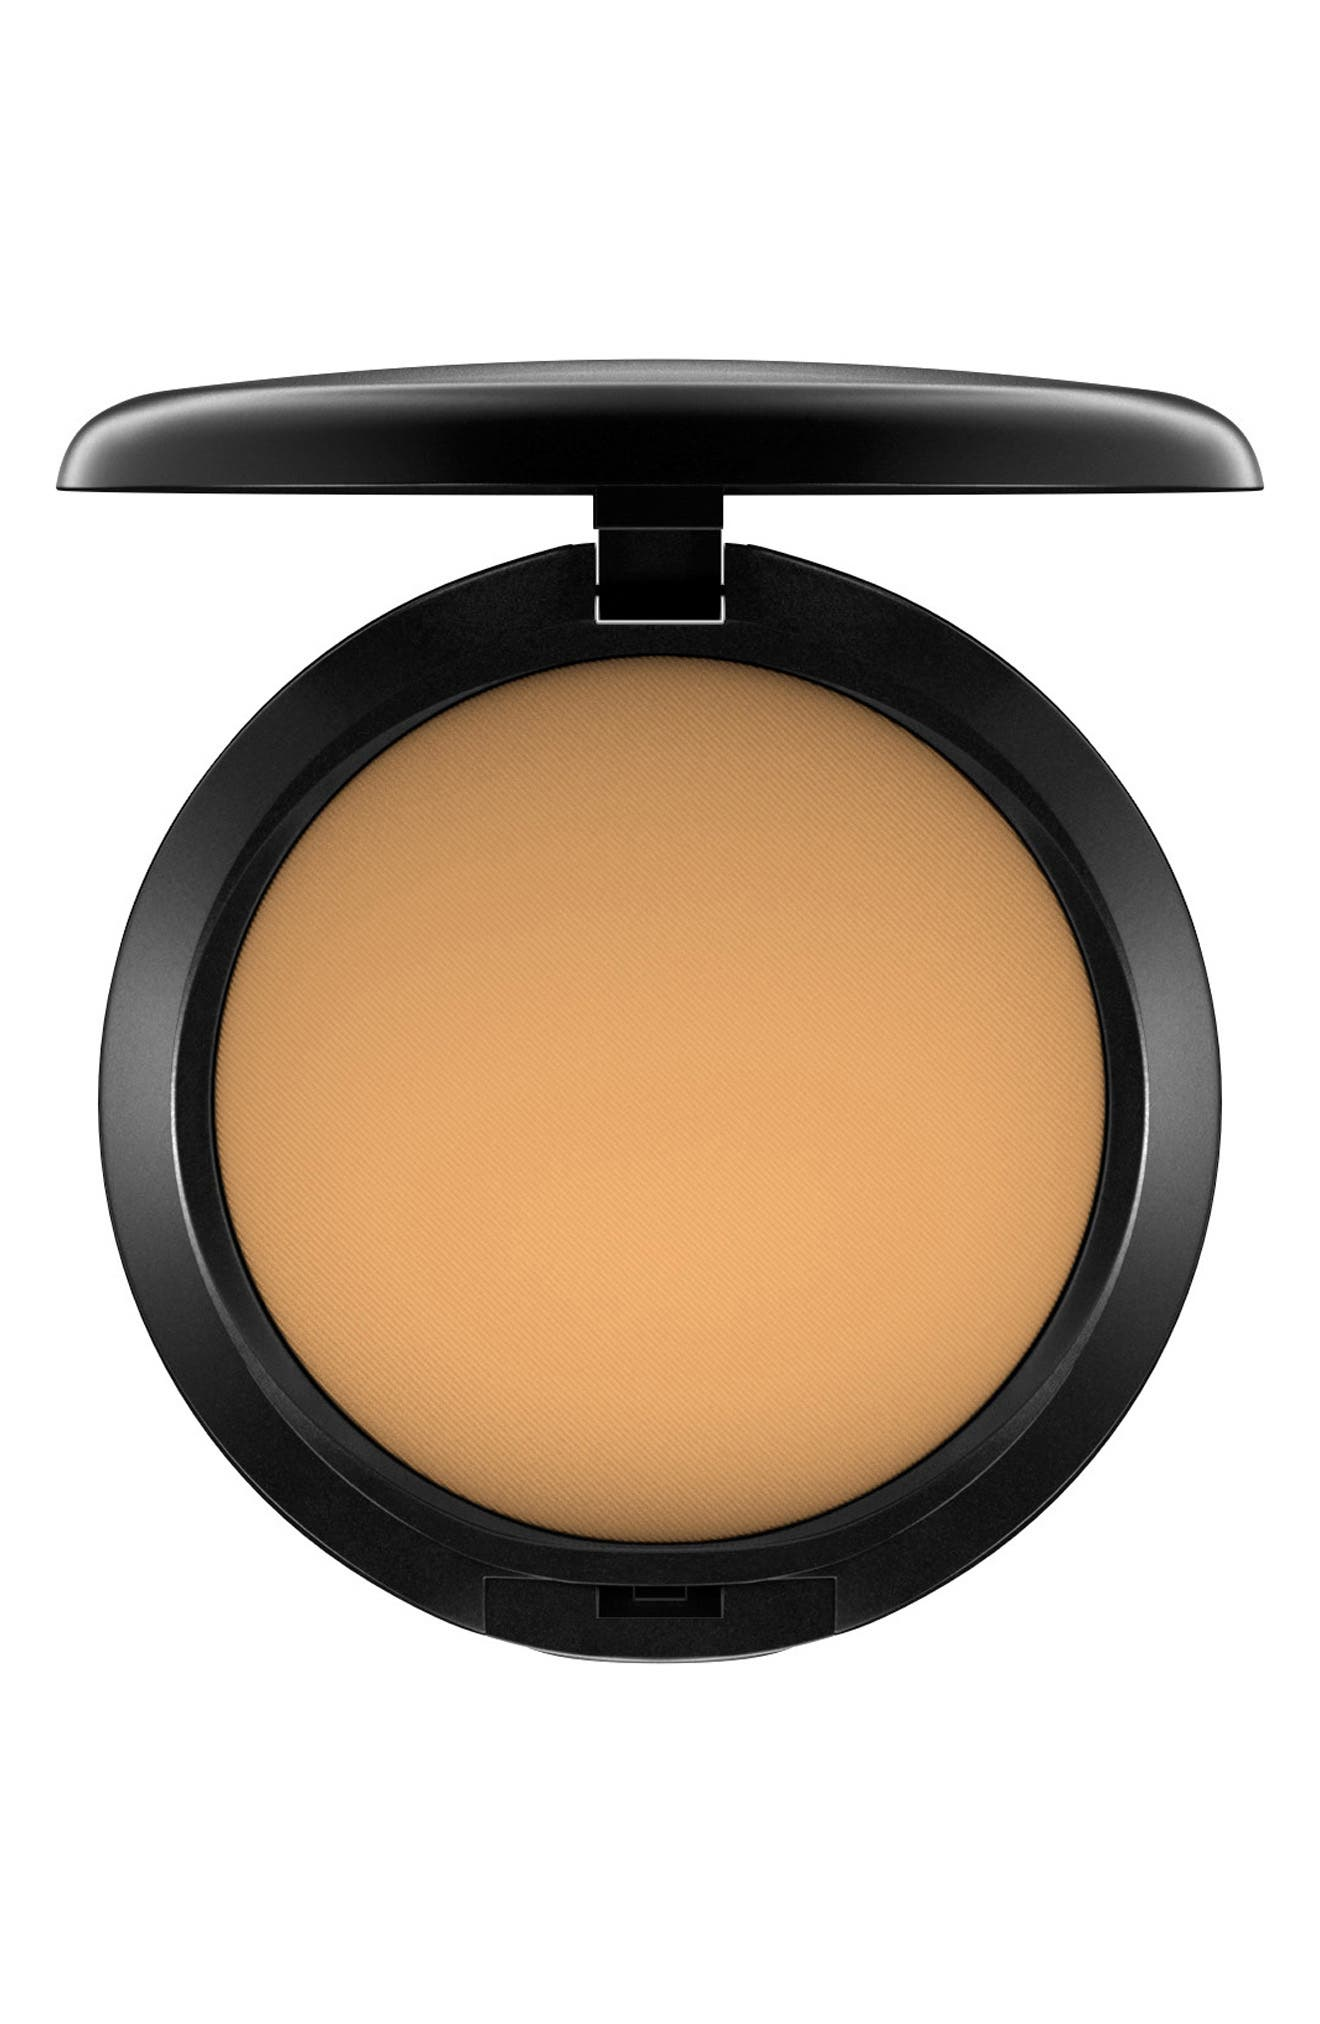 MAC Studio Fix Powder Plus Foundation,                             Main thumbnail 1, color,                             NC55 DEEPEST GOLDEN BRONZE